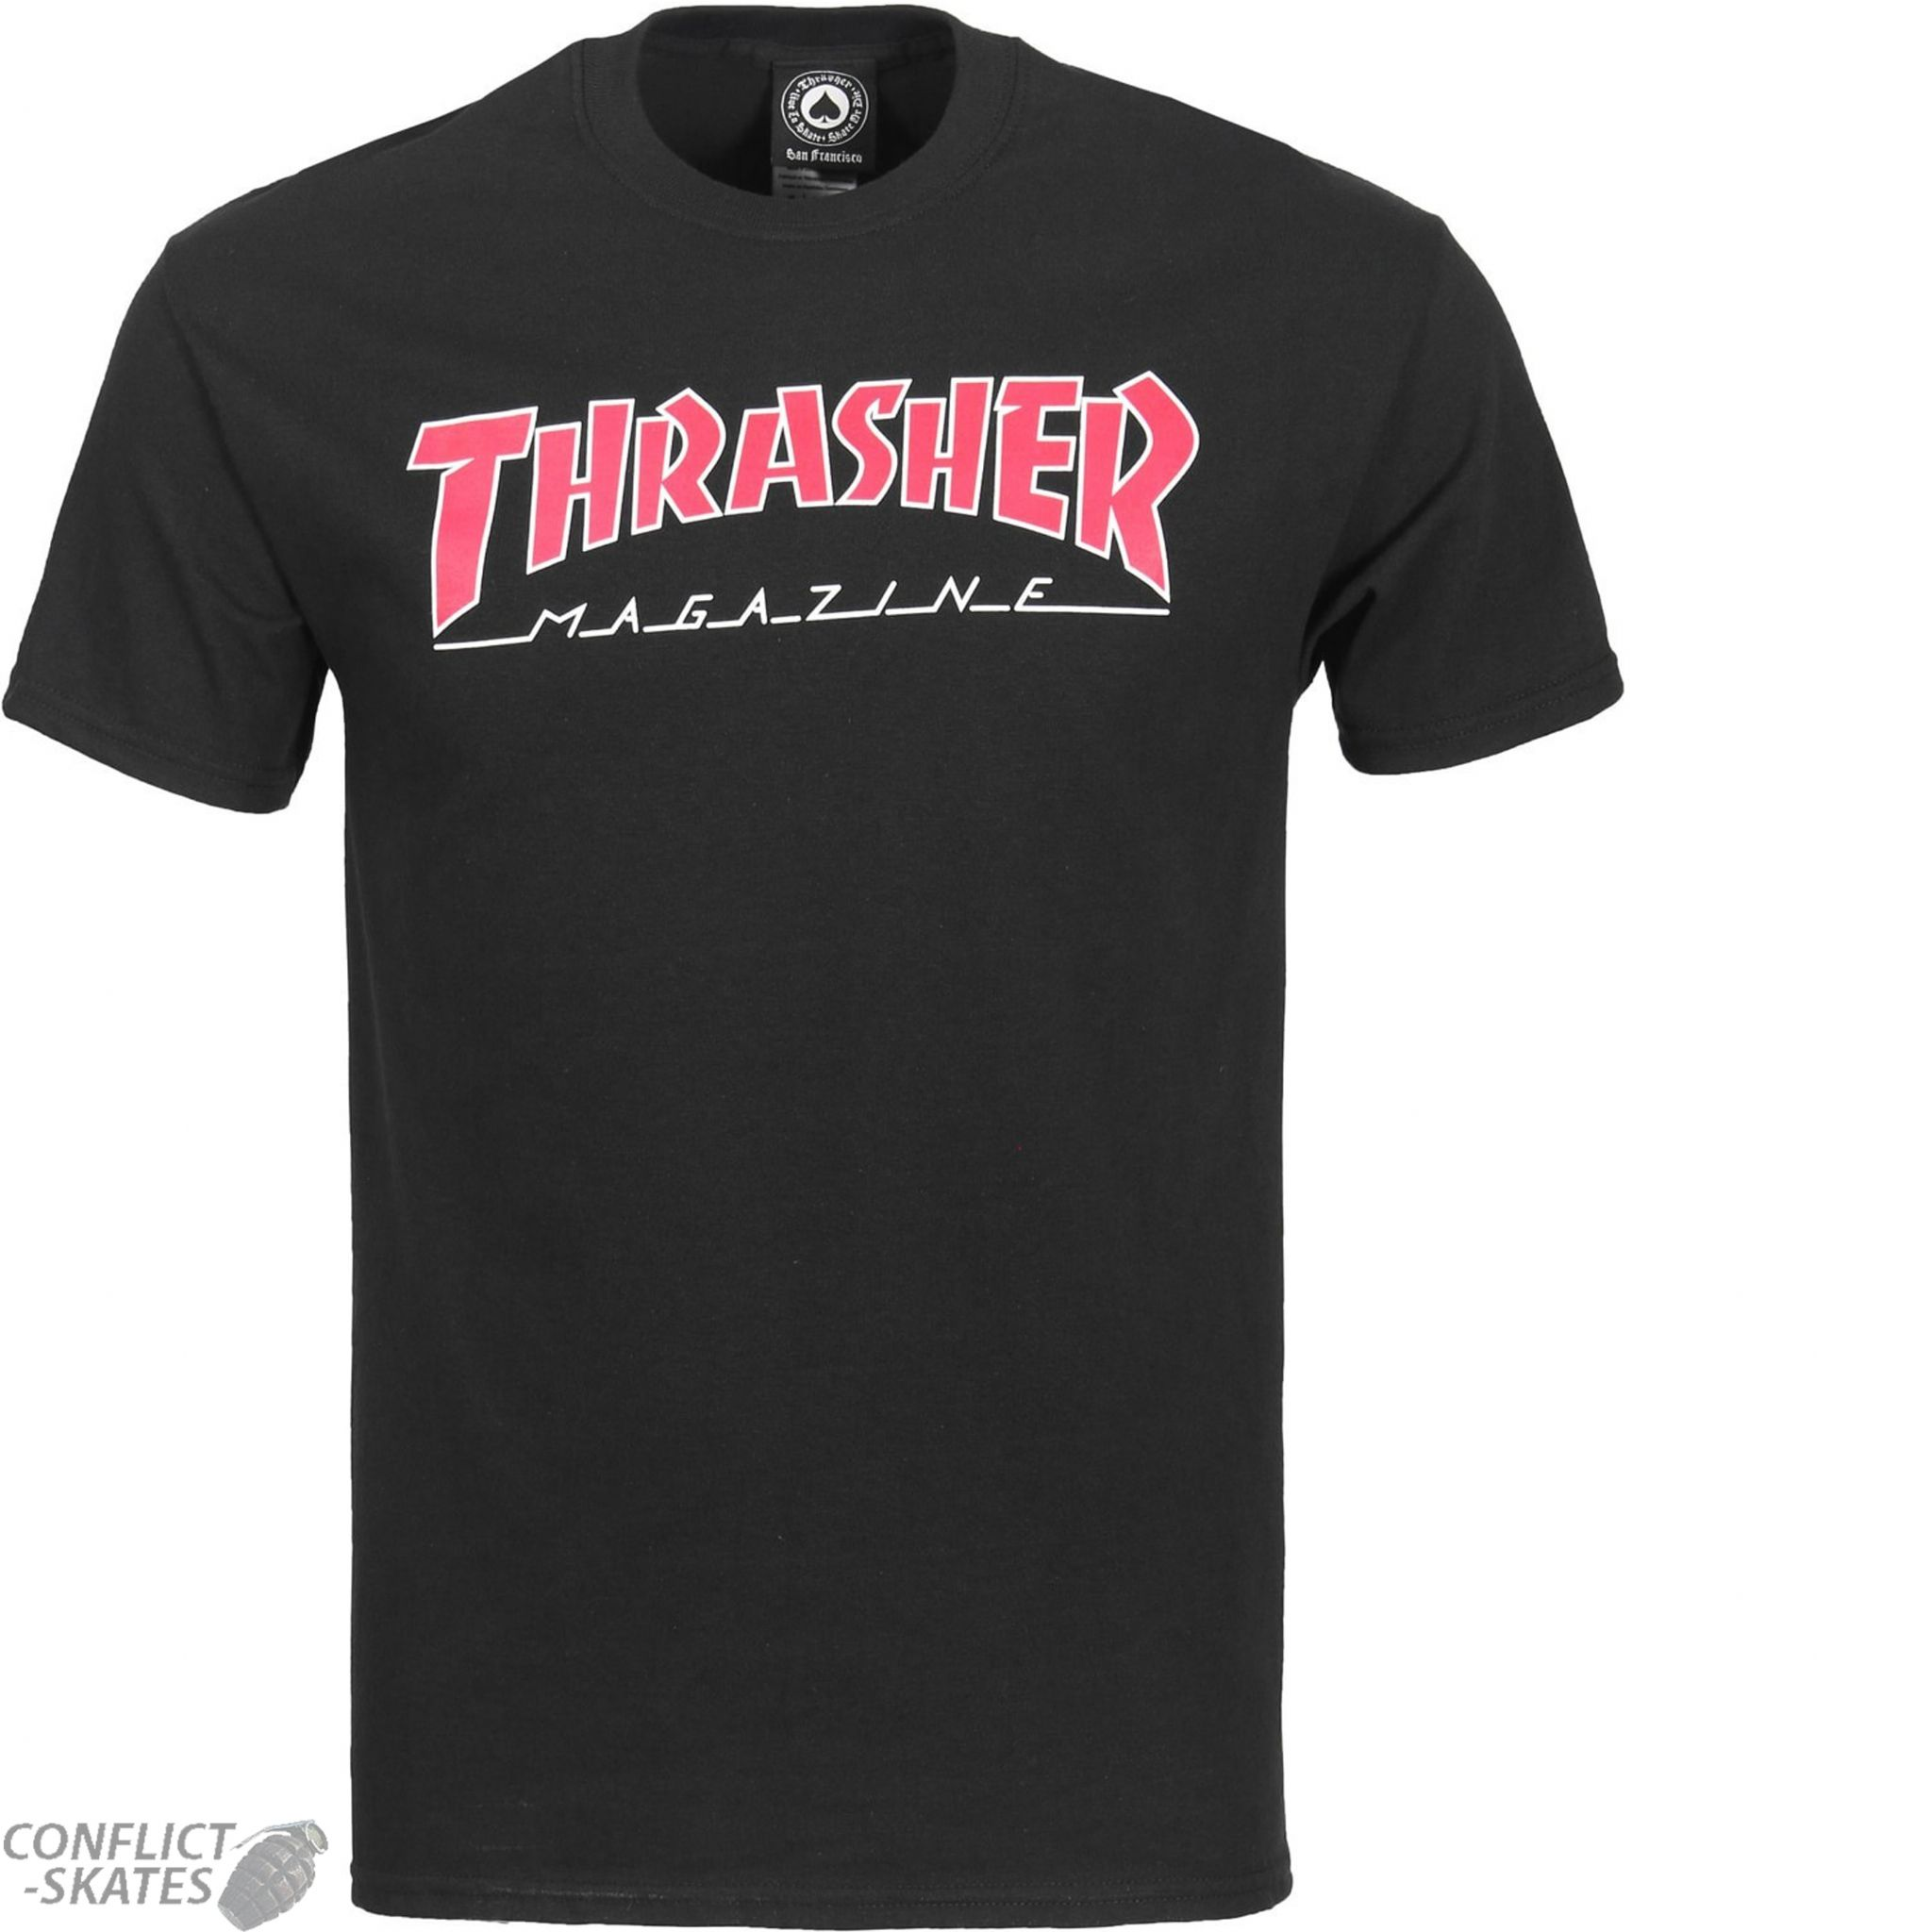 8981ff5b9d8cf2 THRASHER MAGAZINE Outlined Skateboard T-Shirt BLACK Red S M L or XL punk